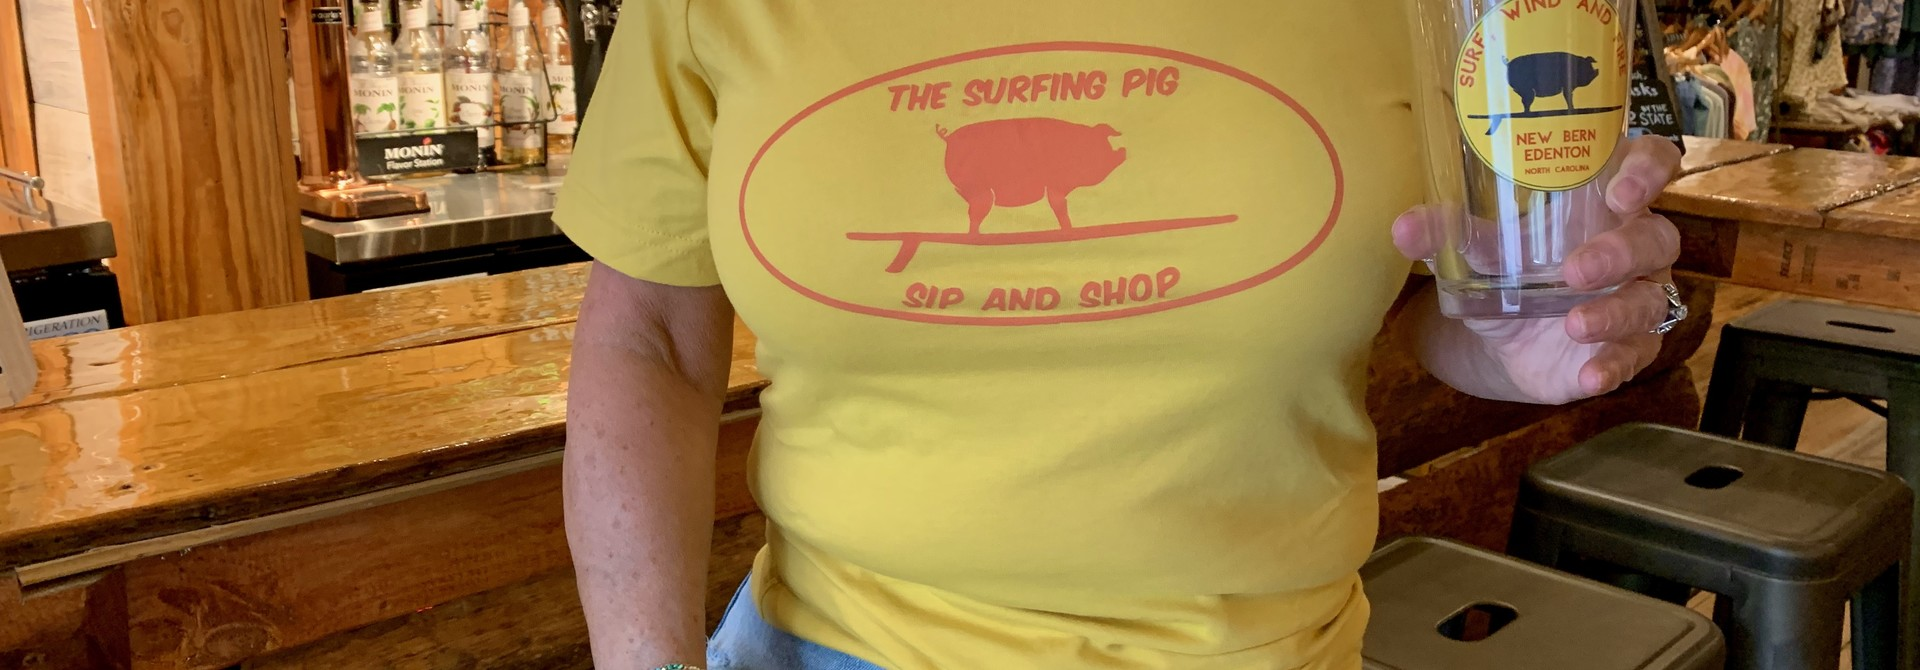 The Surfing Pig Tap Room Apparel